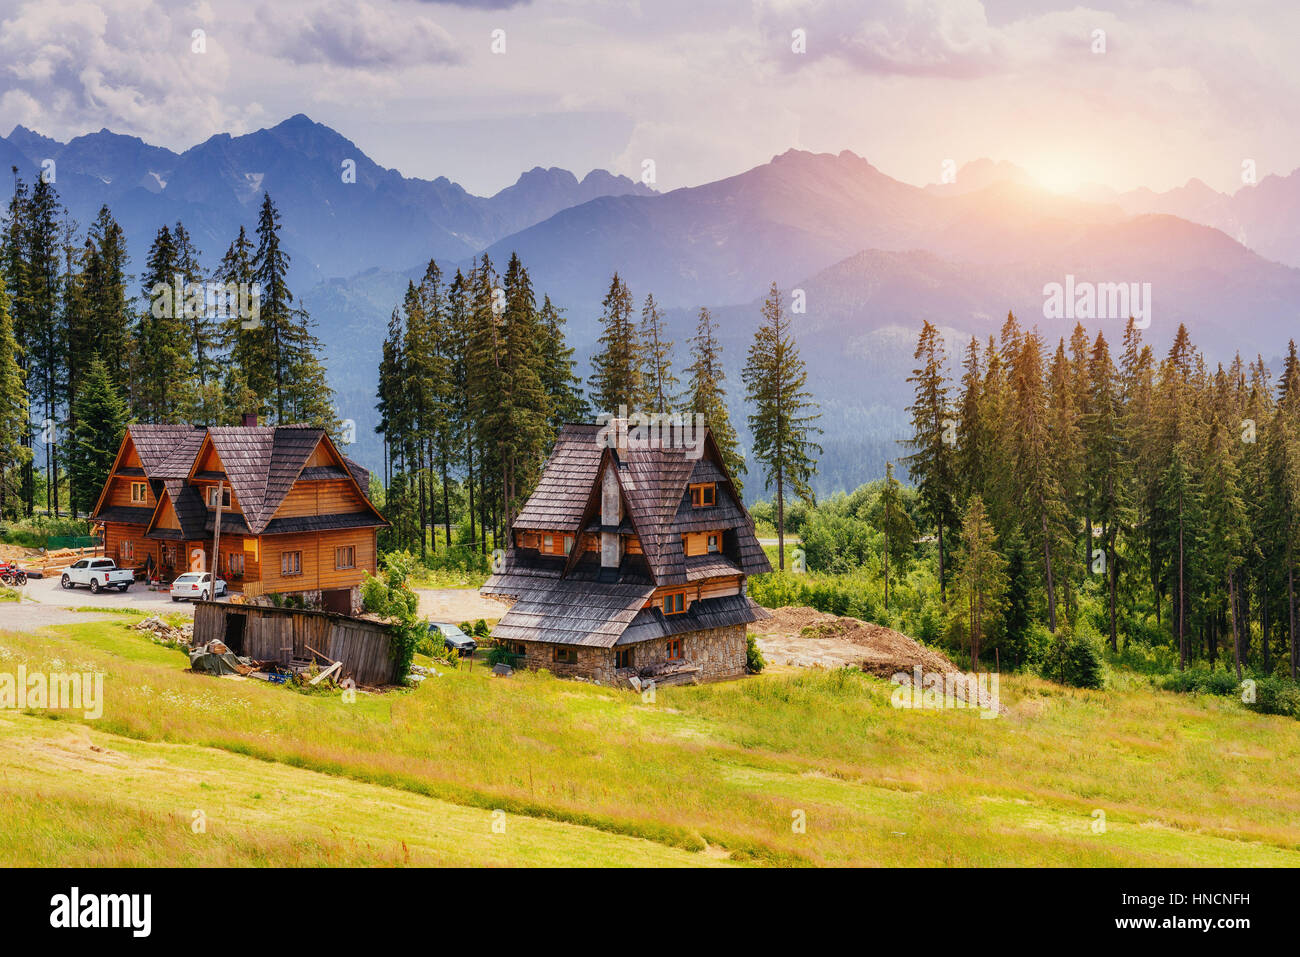 Traditional wooden house in the mountains on a green field Mount - Stock Image